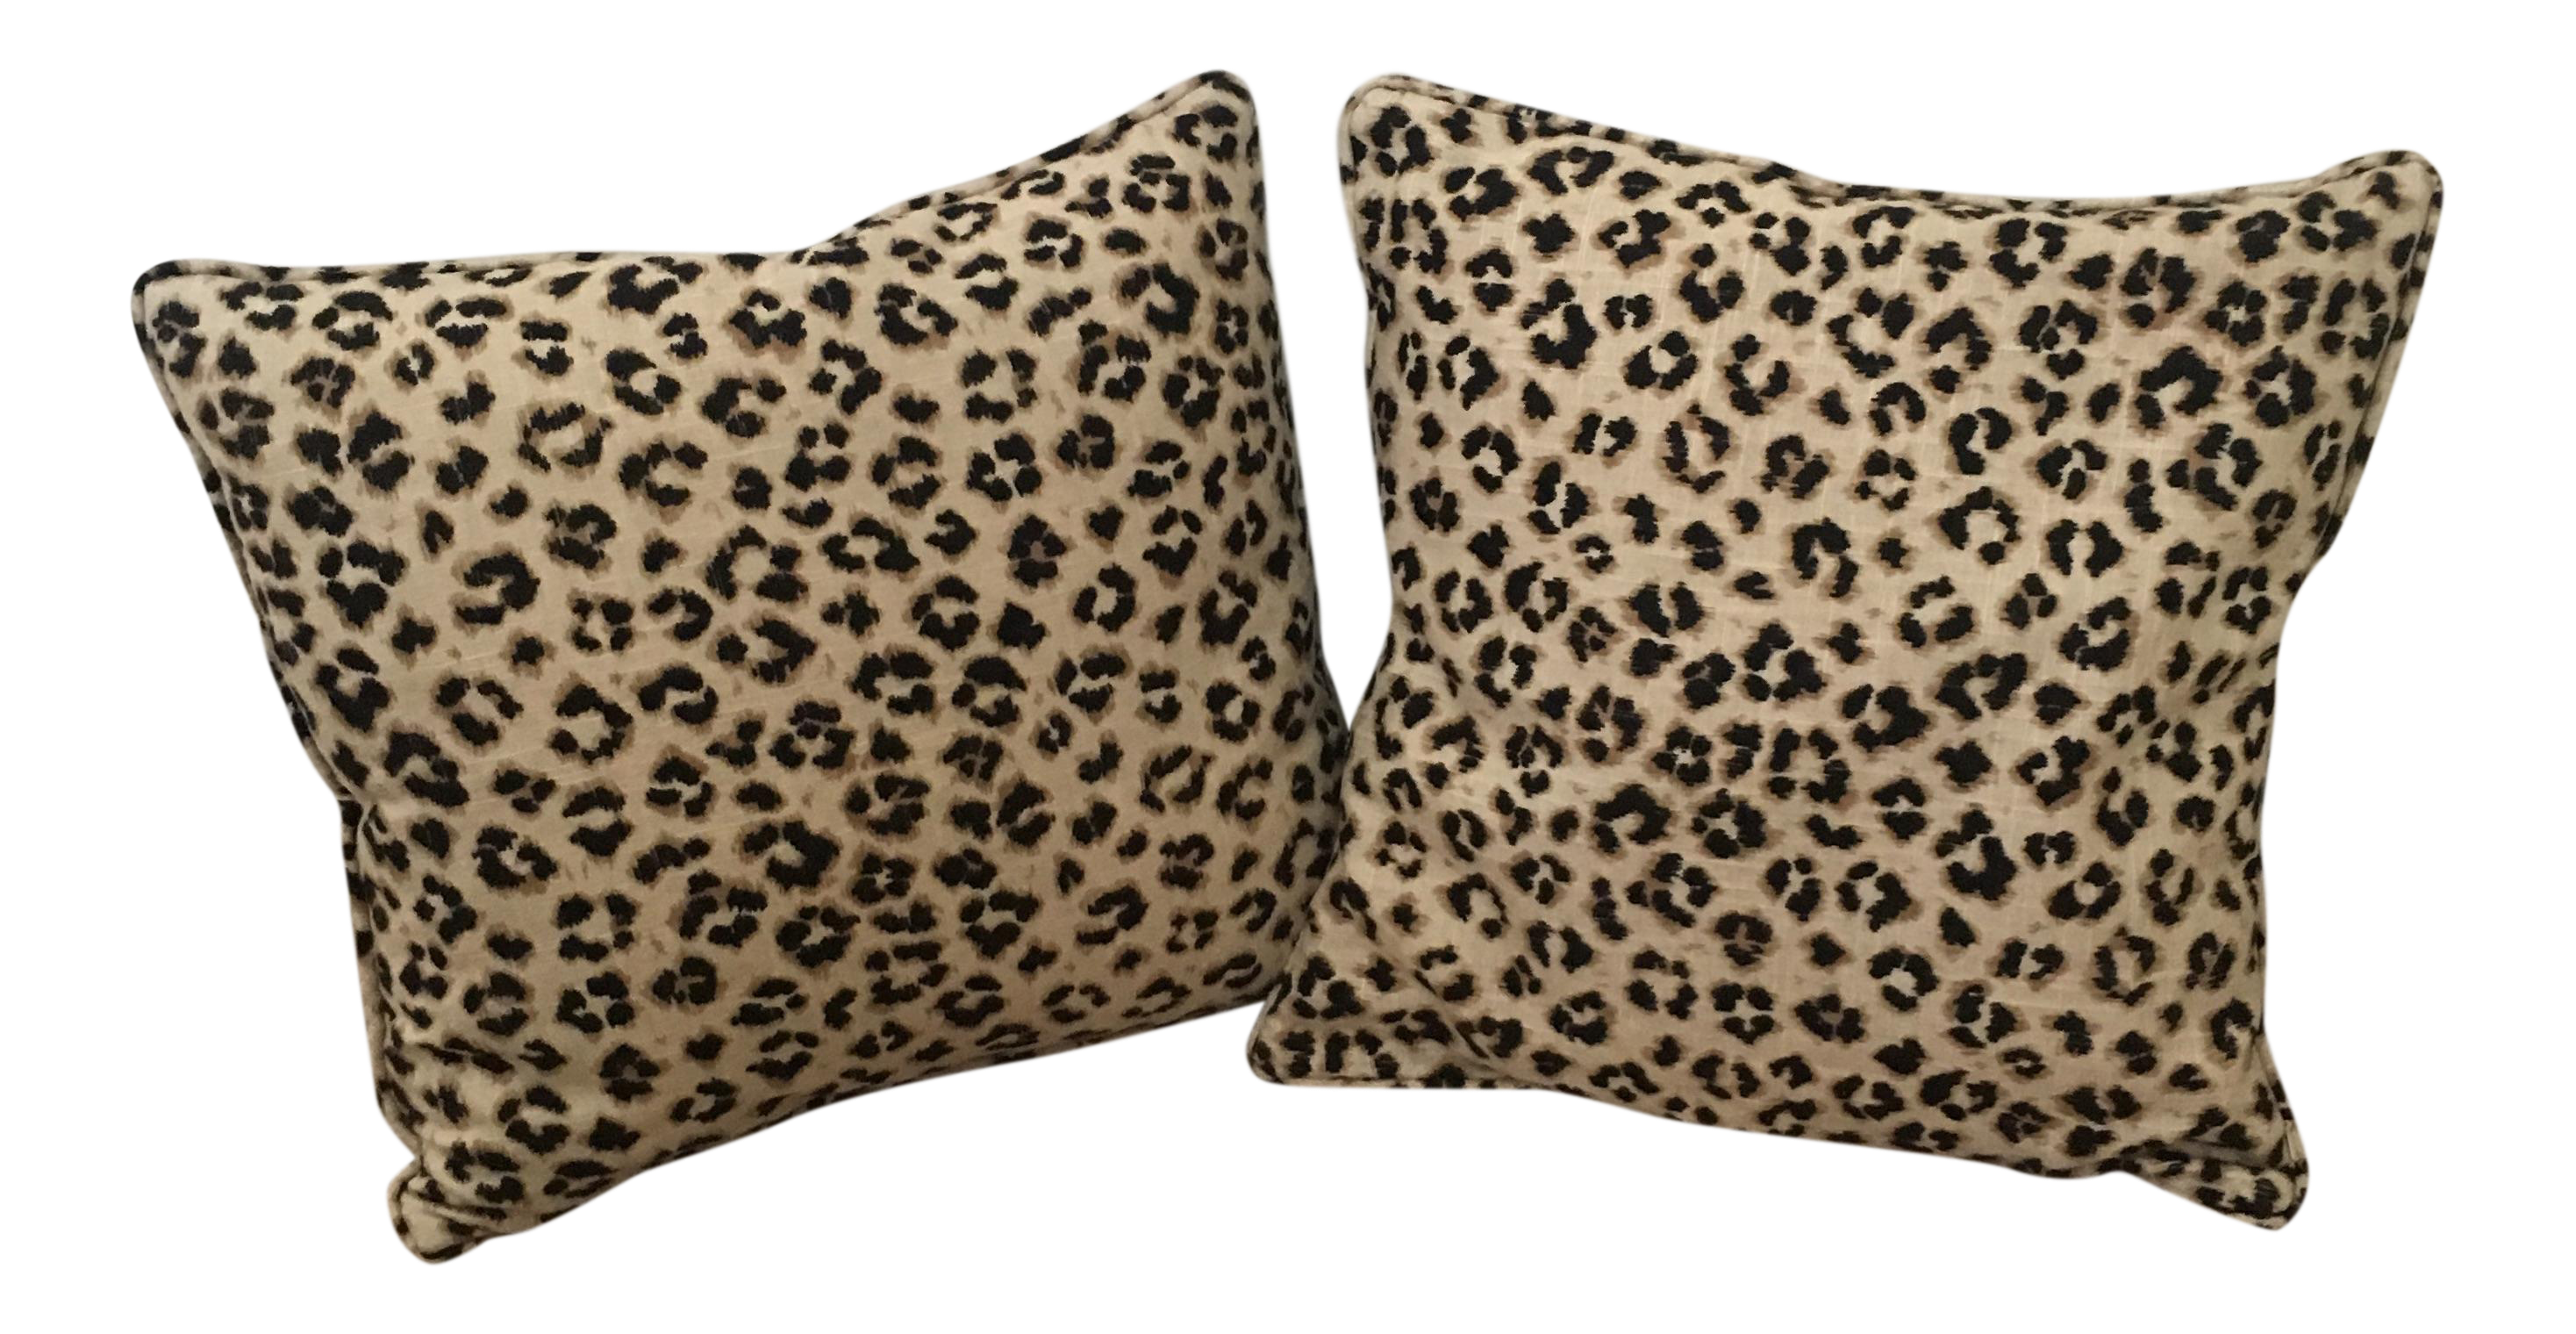 death only red pillow leopard cover metal behemoth decor insert pin pillows available diy